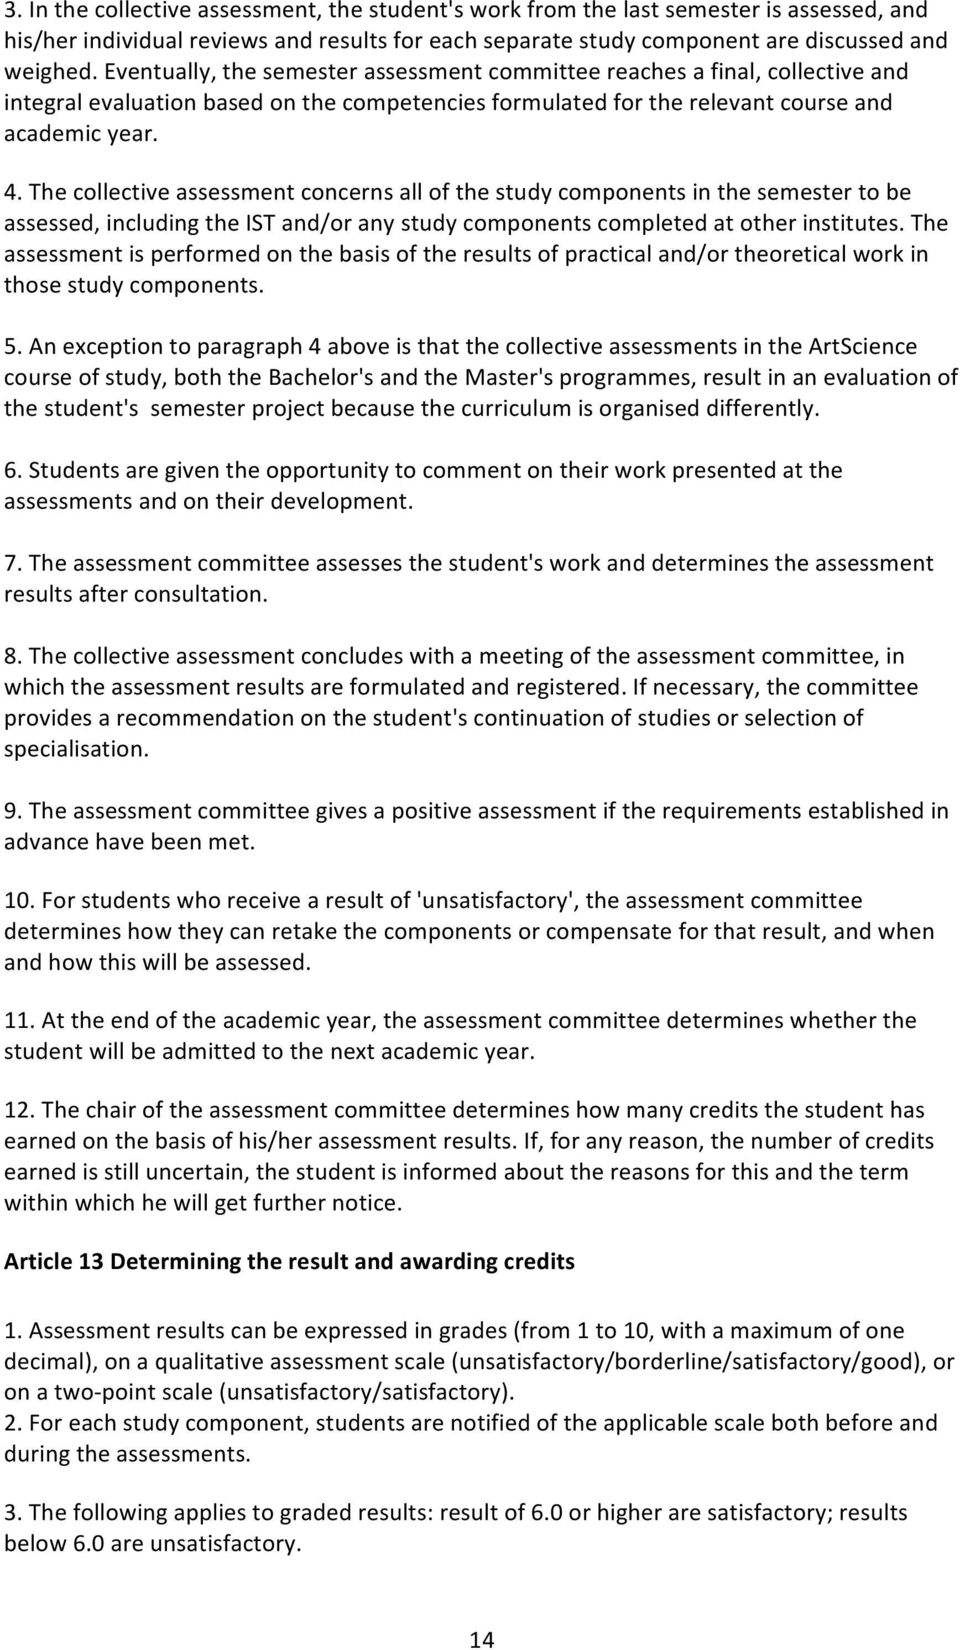 The collective assessment concerns all of the study components in the semester to be assessed, including the IST and/or any study components completed at other institutes.